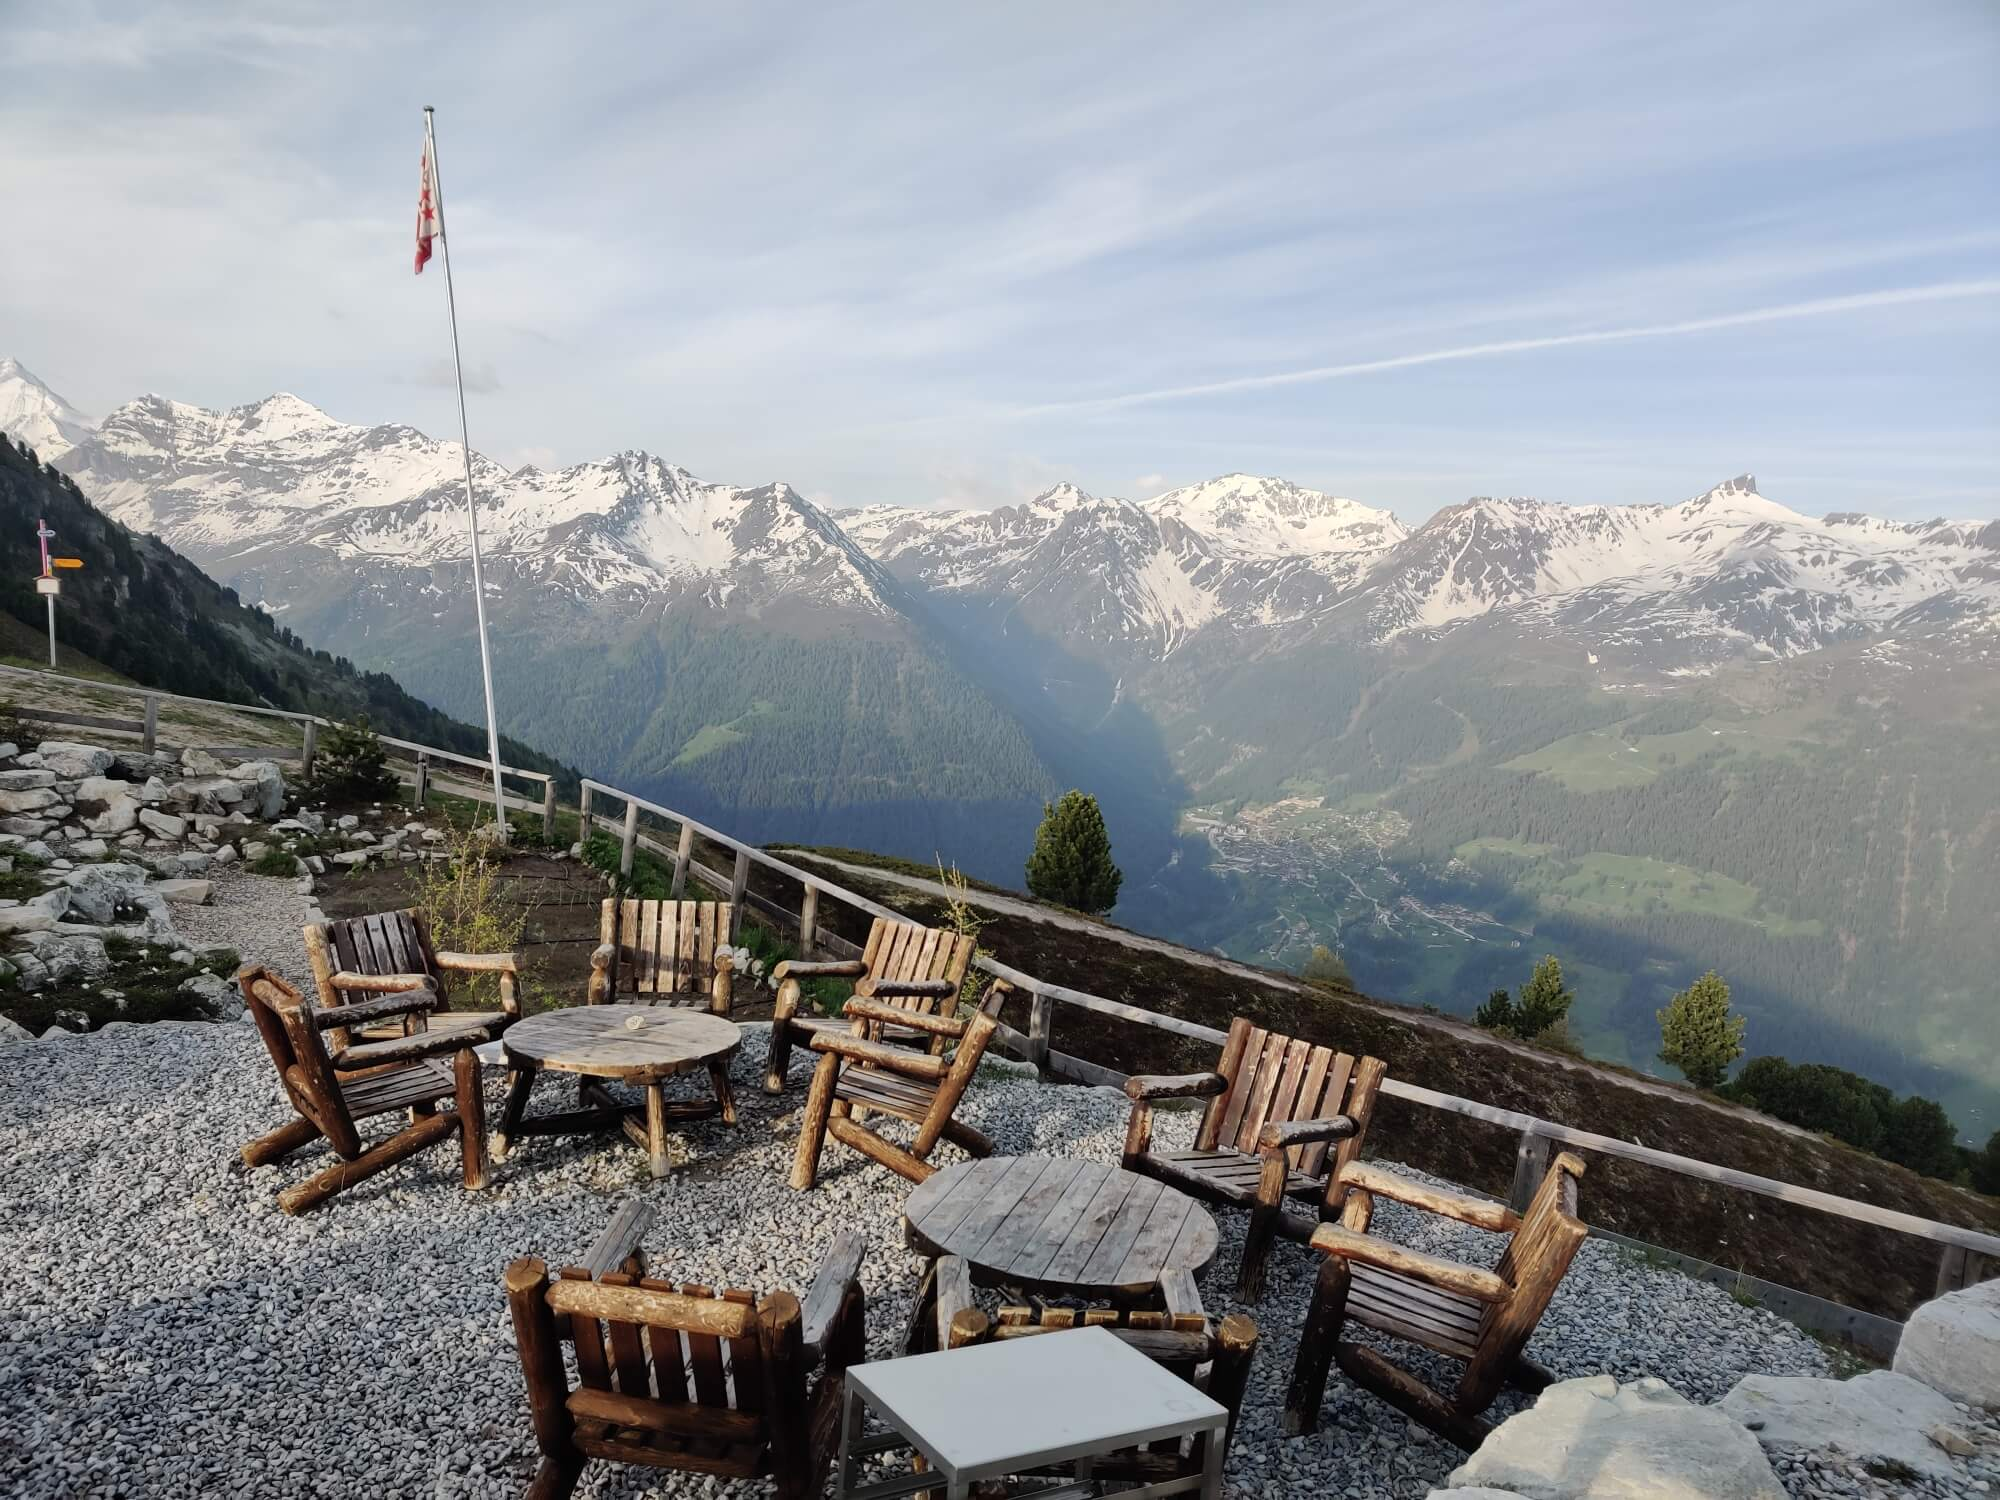 Hotel Weisshorn:  Stop for morning tea or lunch on your way to Medipass